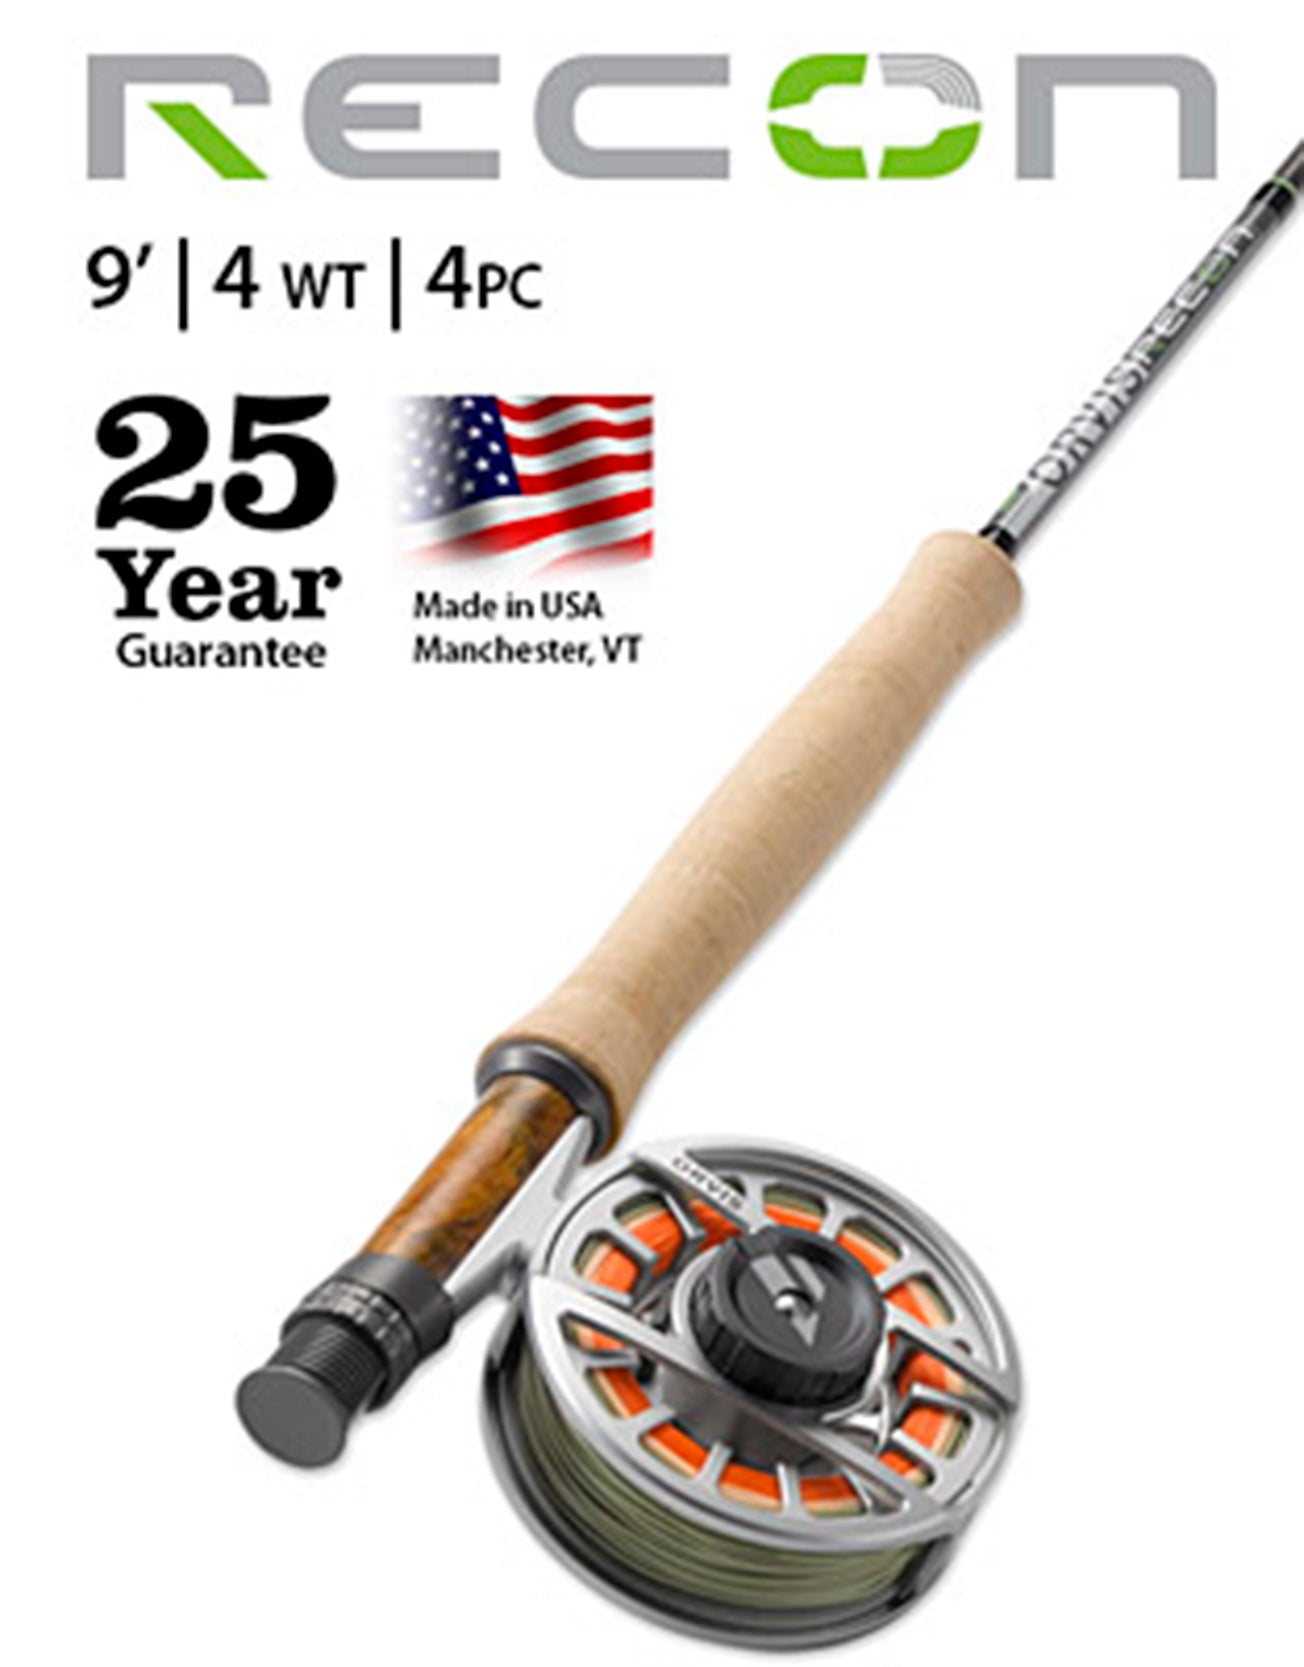 New 2020 Orvis Recon 4wt sale